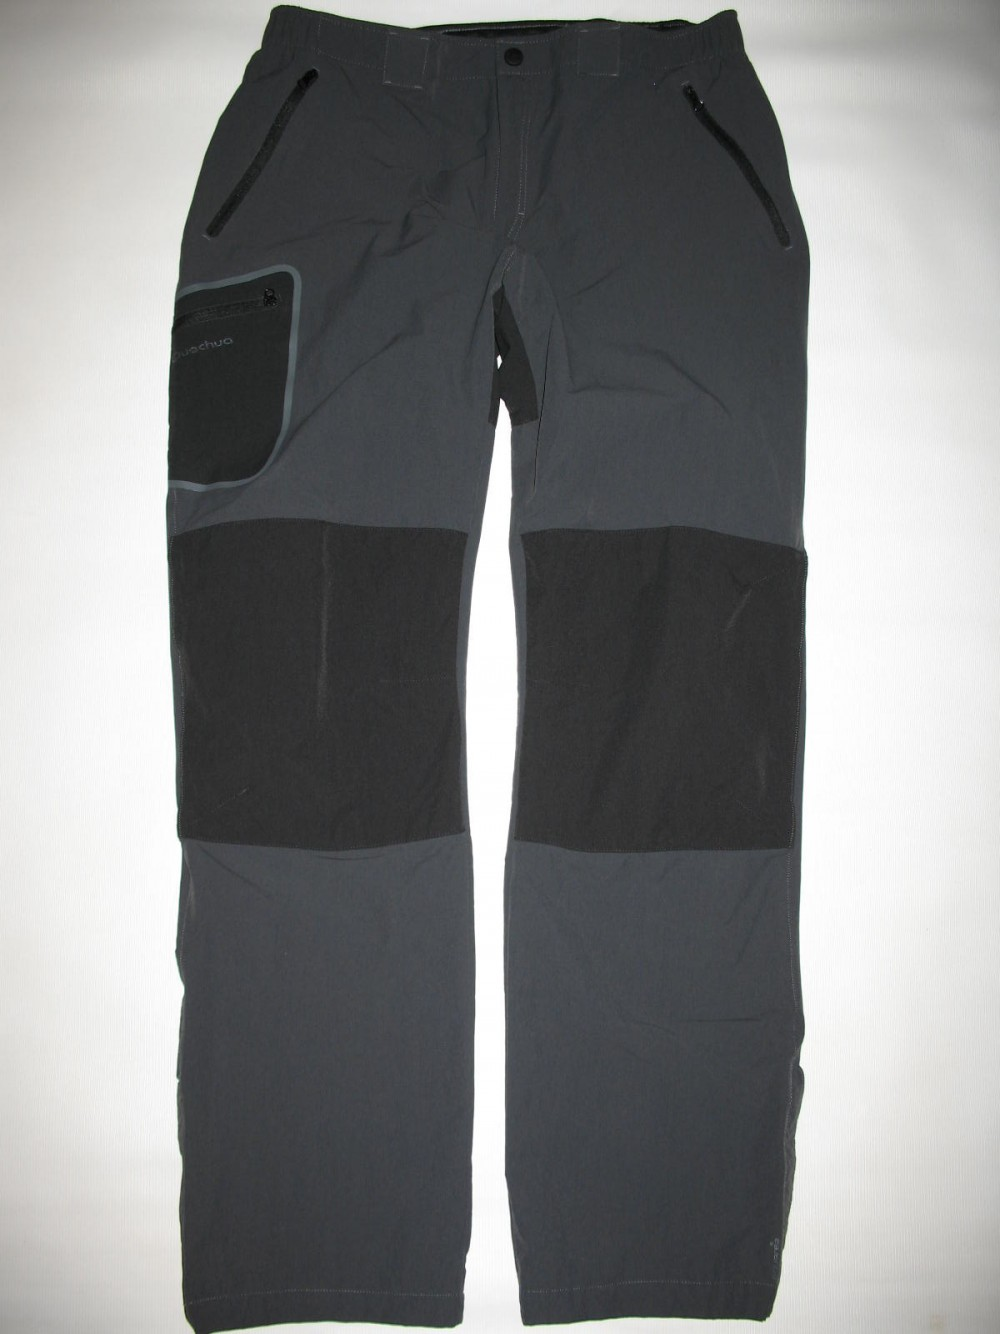 Штаны QUECHUA panther softshell pants (размер 48-M/L) - 1